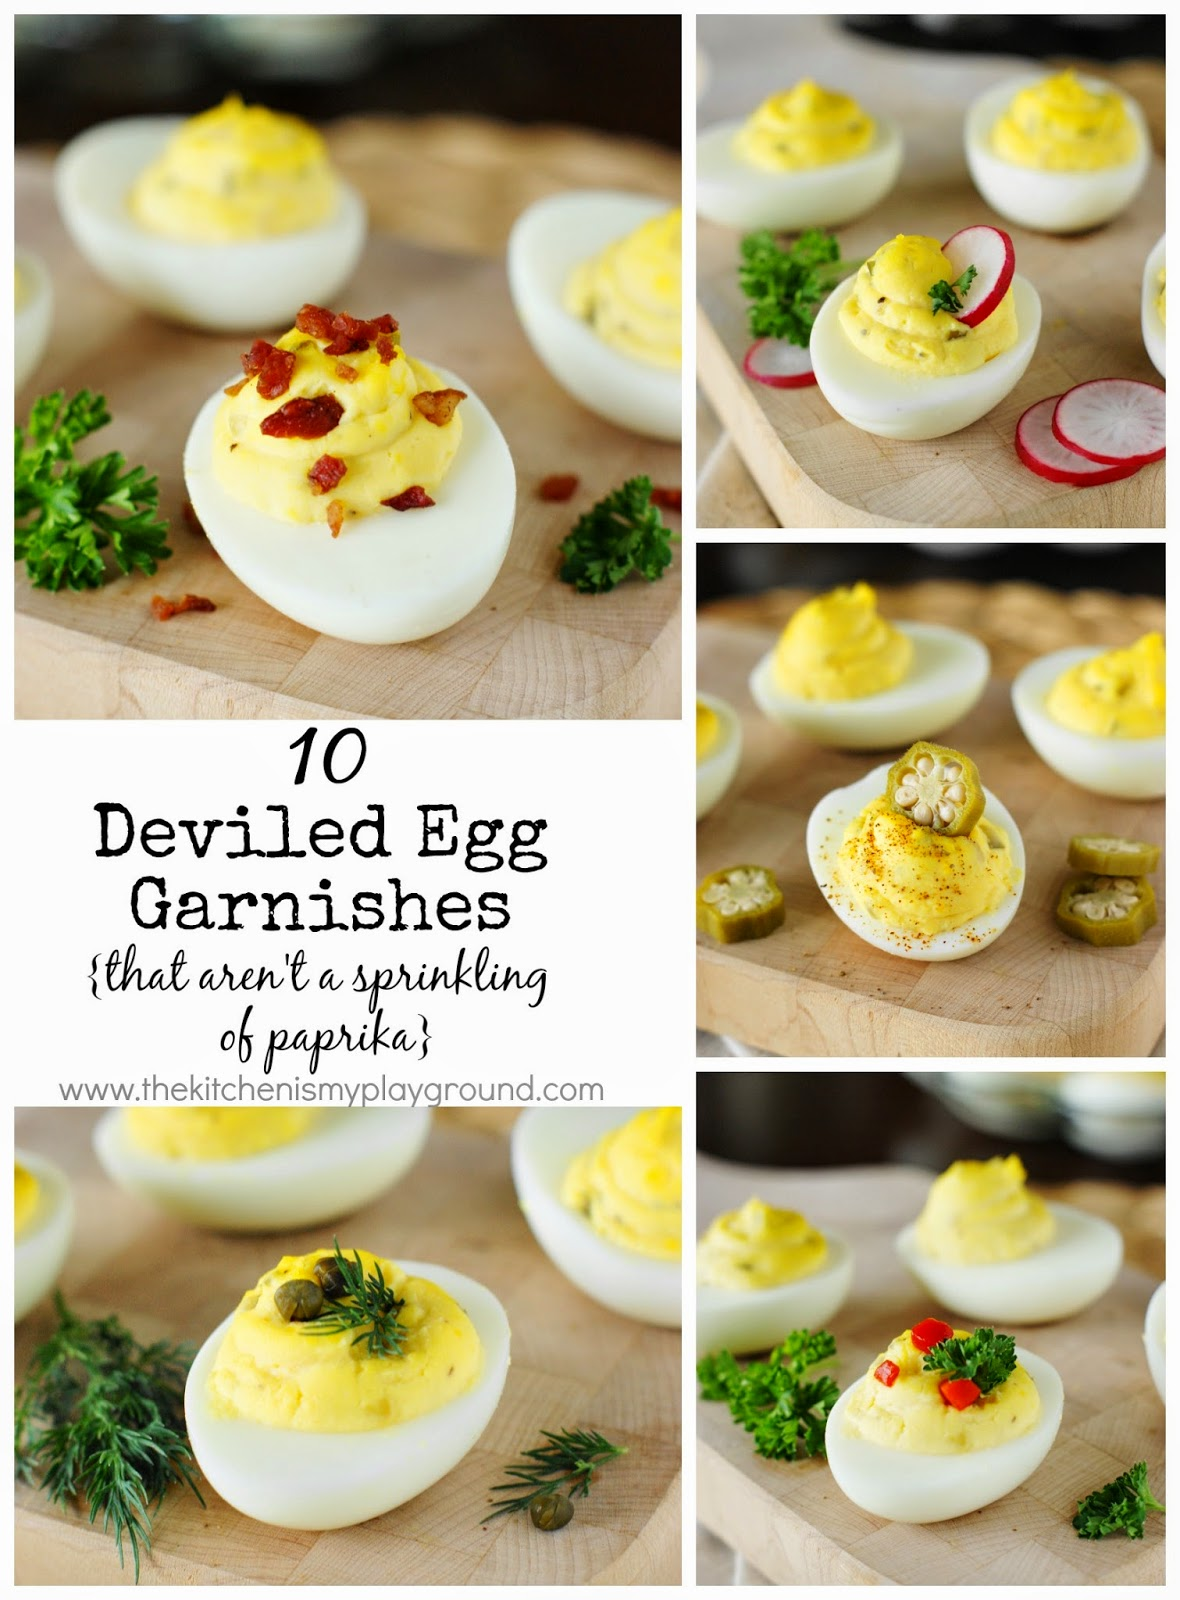 10 Deviled Egg Garnishes